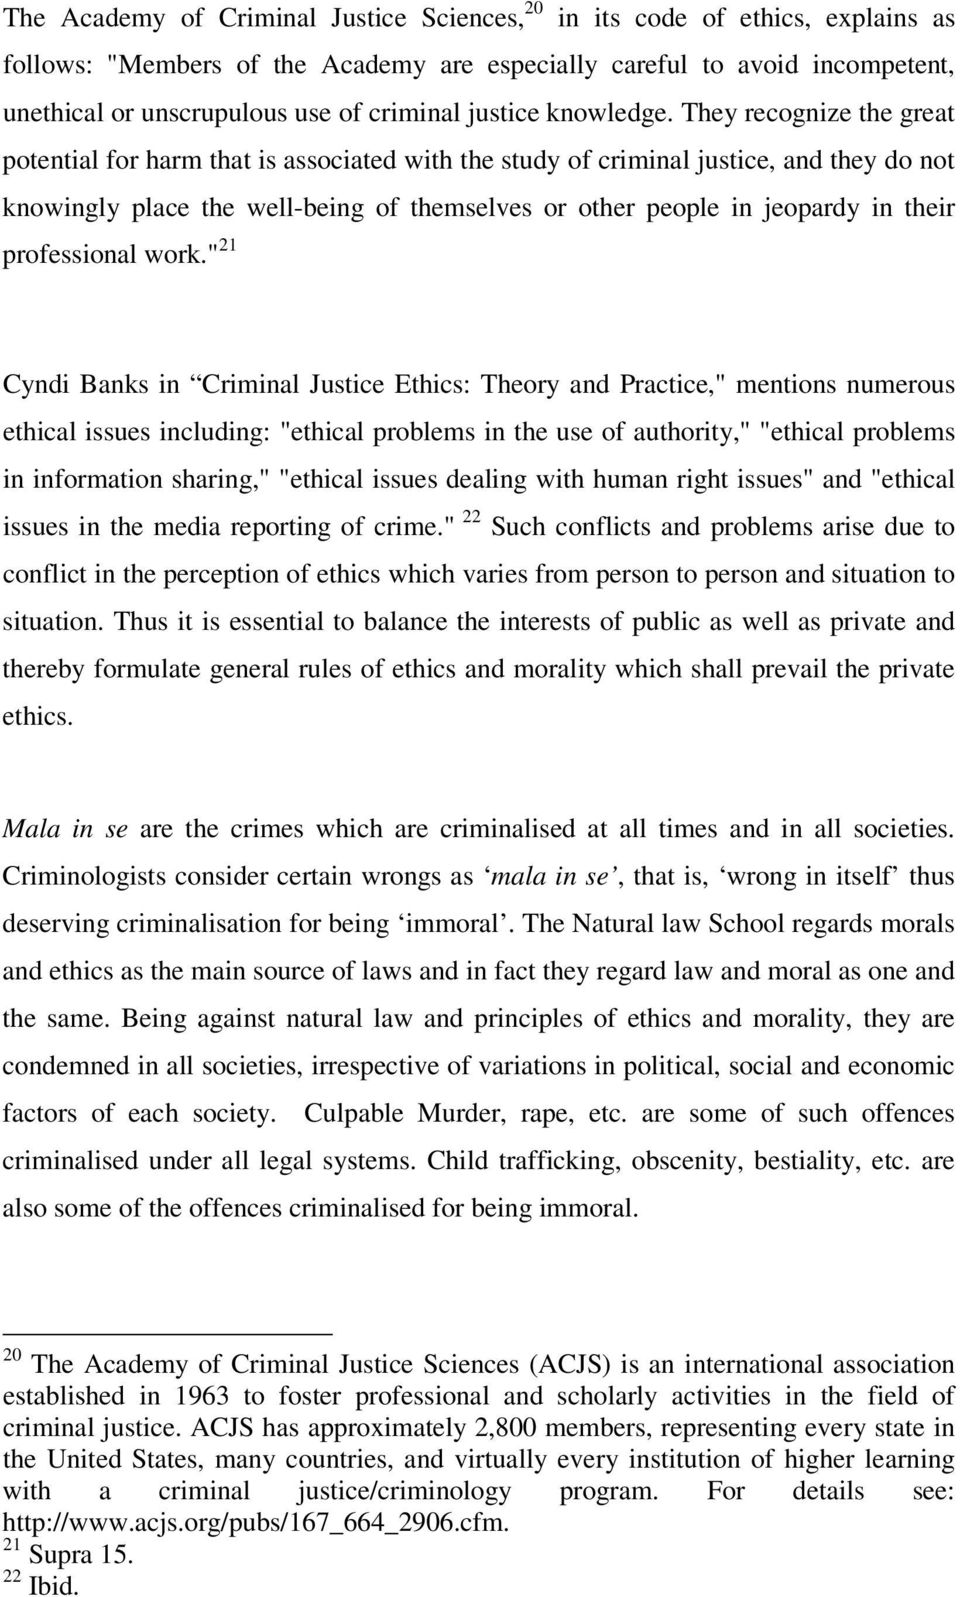 criminology code of ethics